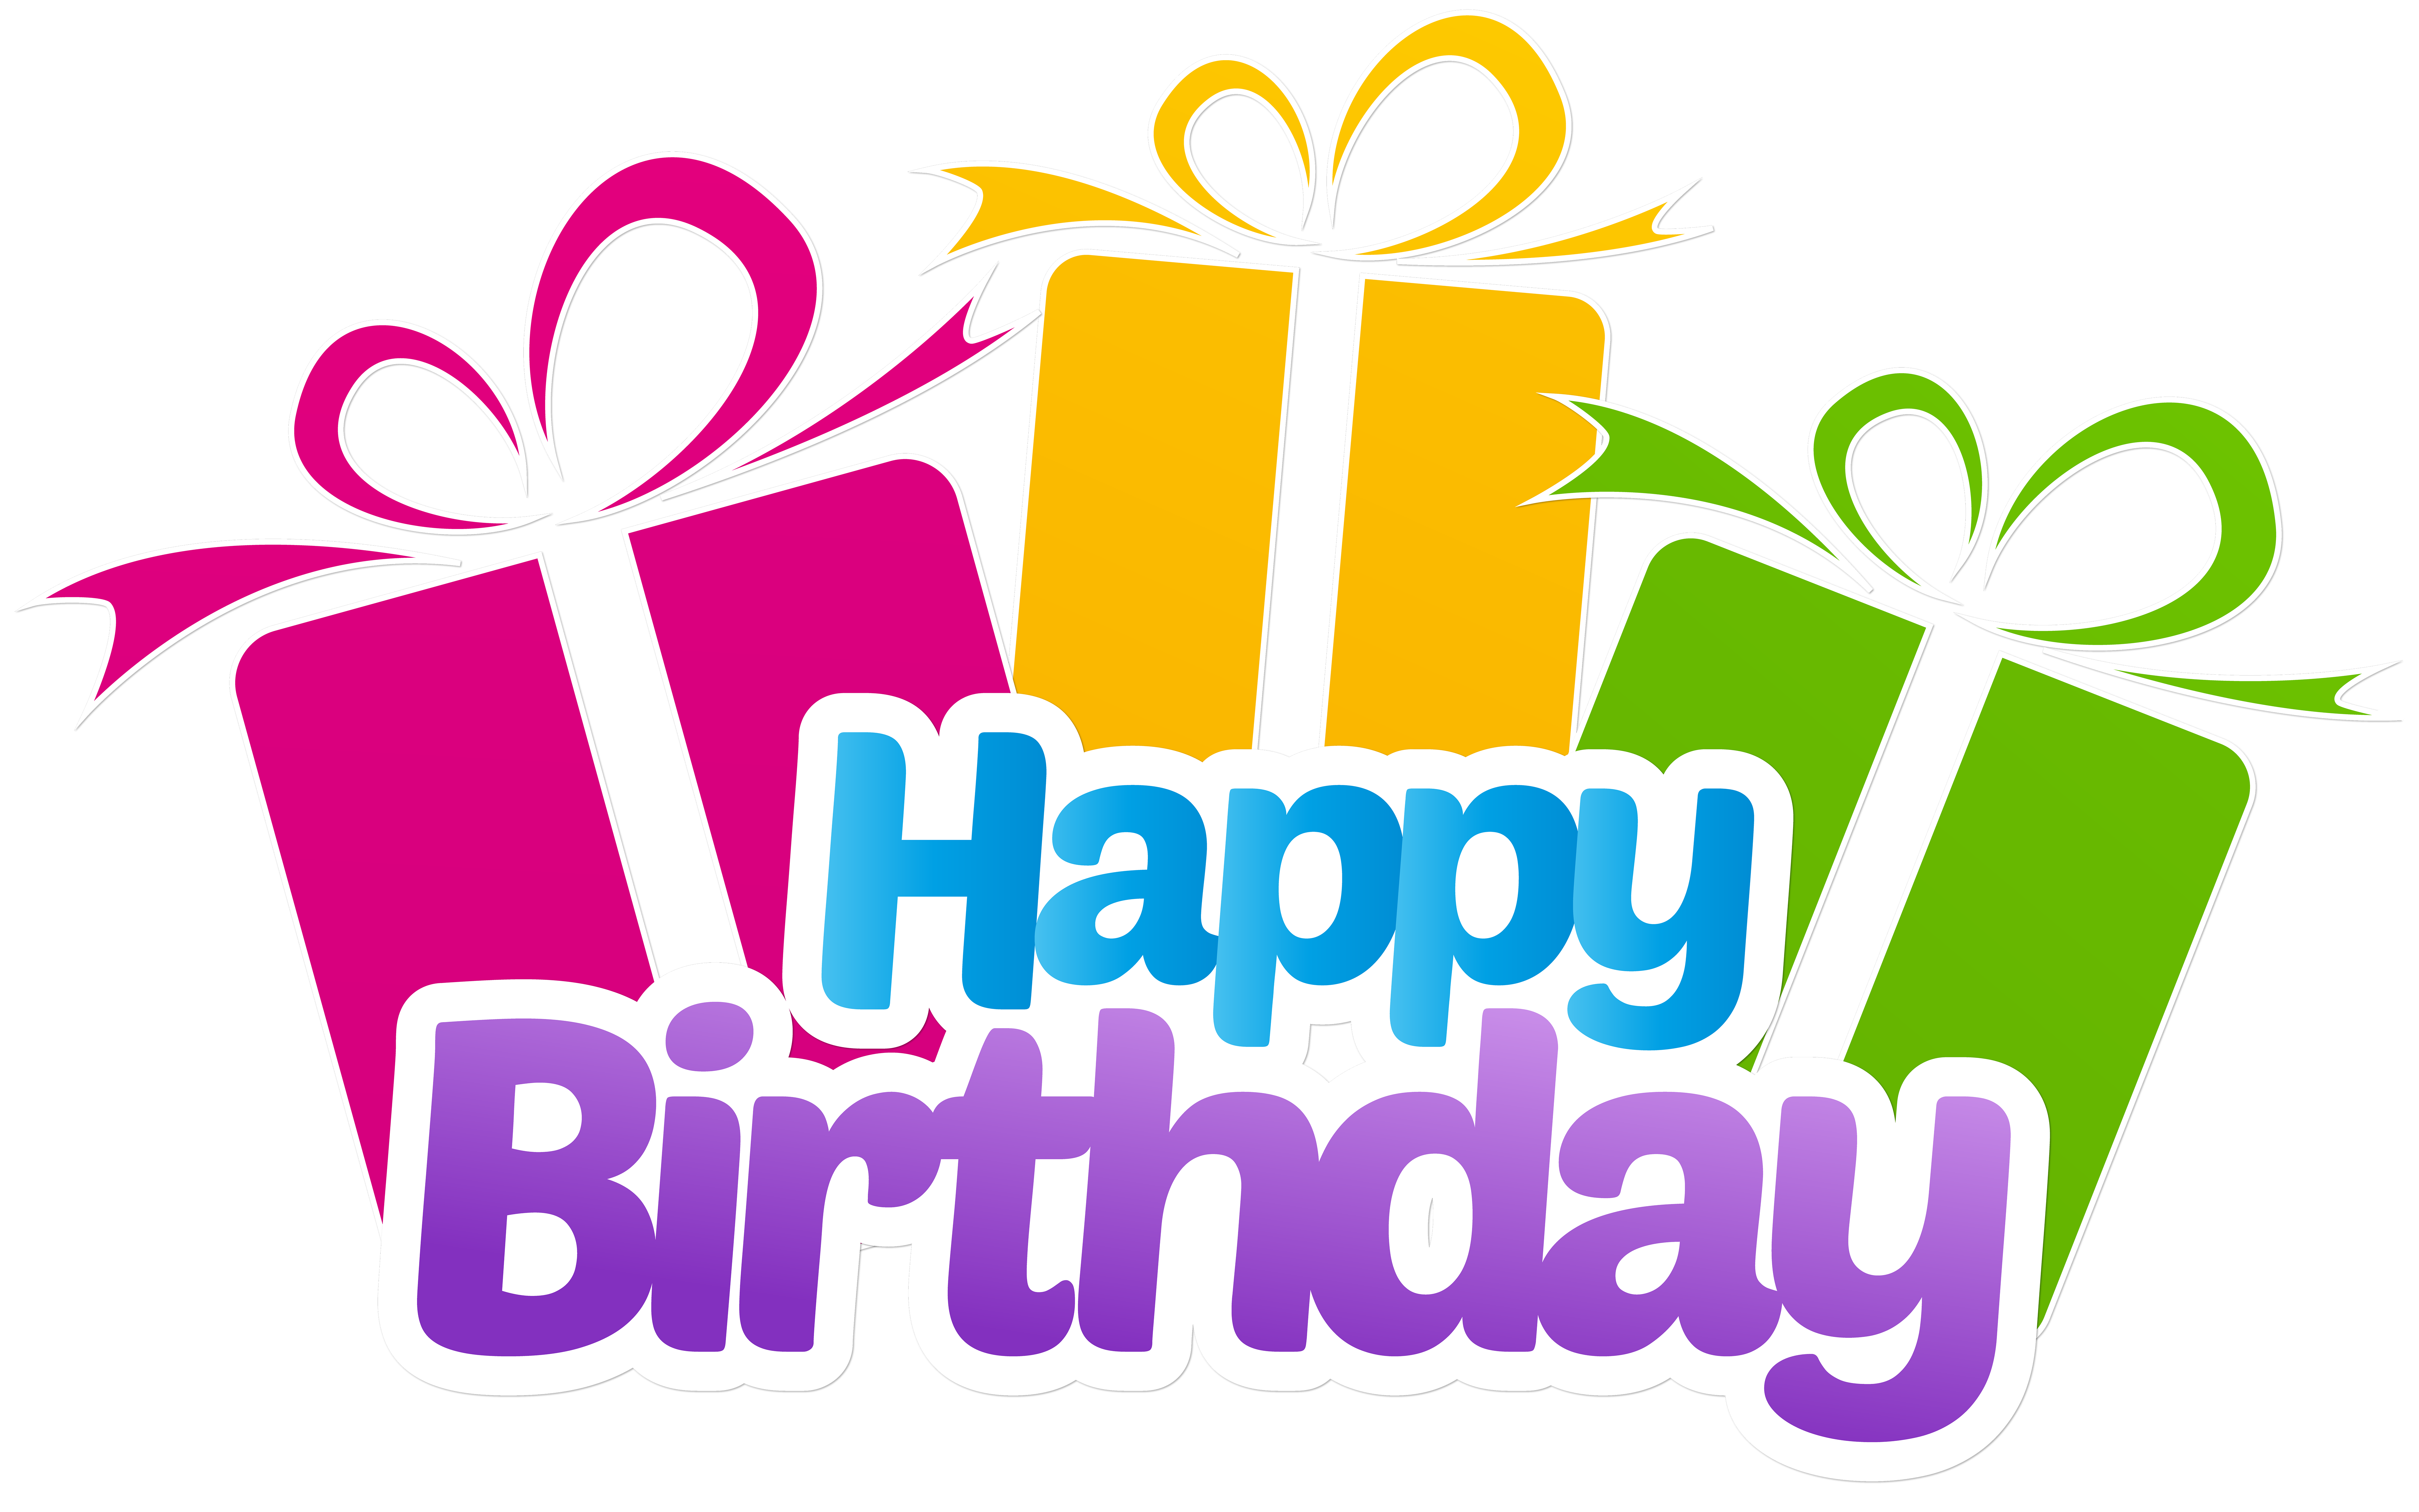 Birthday Png Images - Happy Birthday with Gifts PNG Clip Art Image | Gallery ...